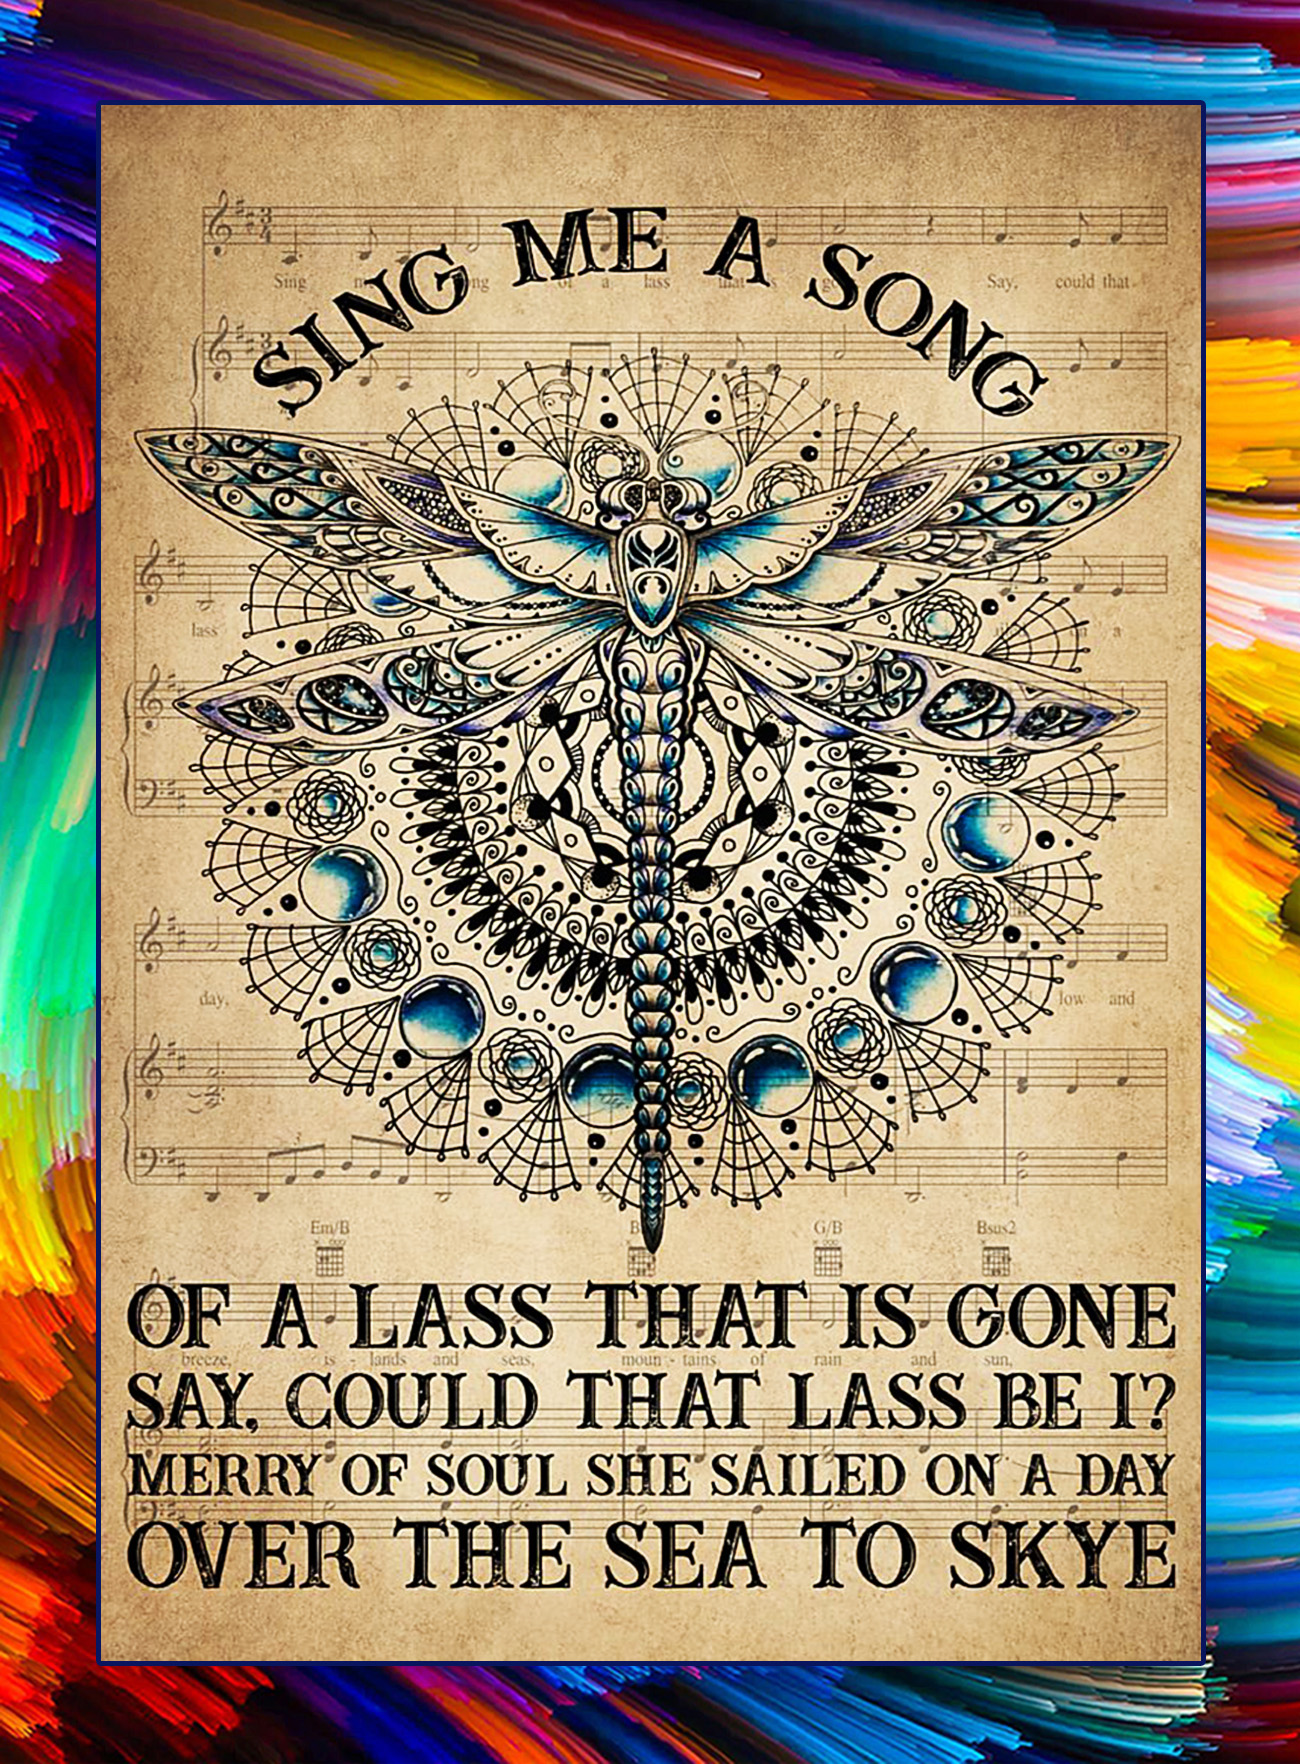 Dragonfly sing me a song poster - A4